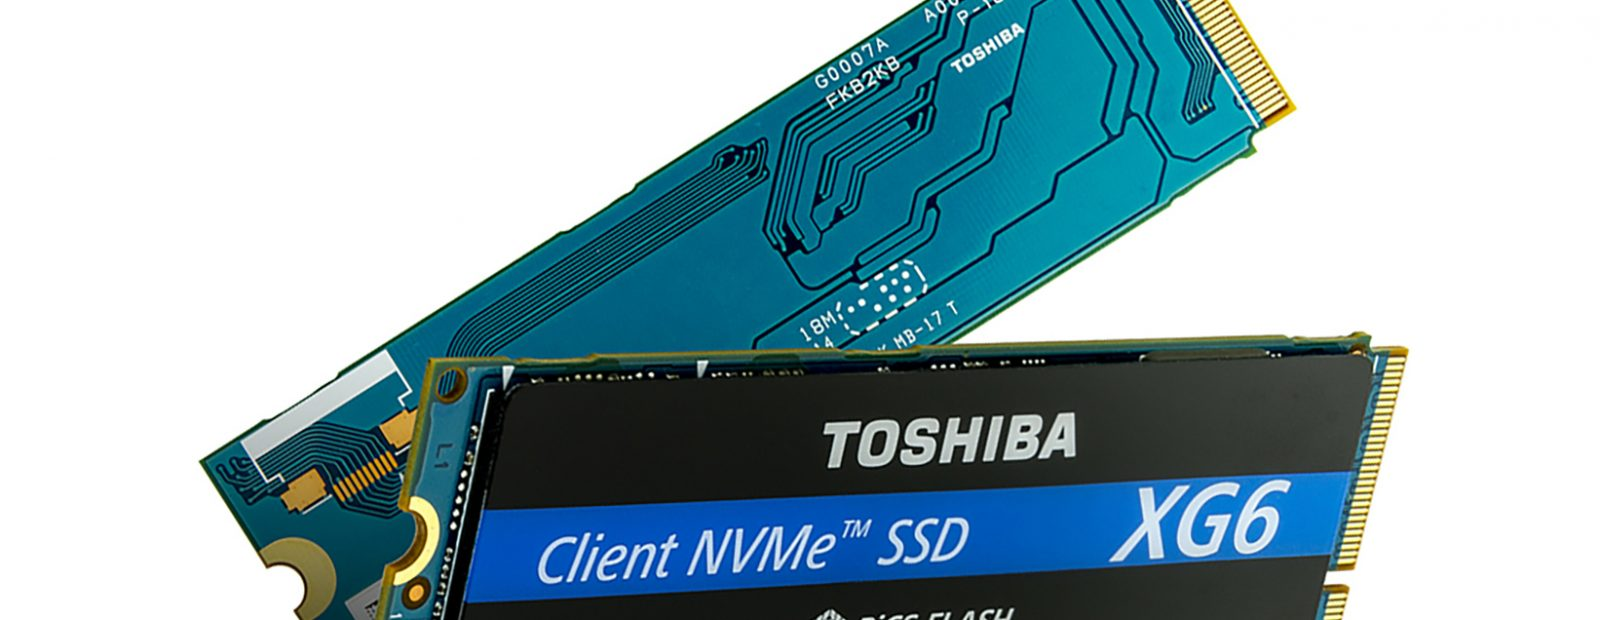 Toshiba XG6 NVMe SSD review: is this 96-layer SSD better